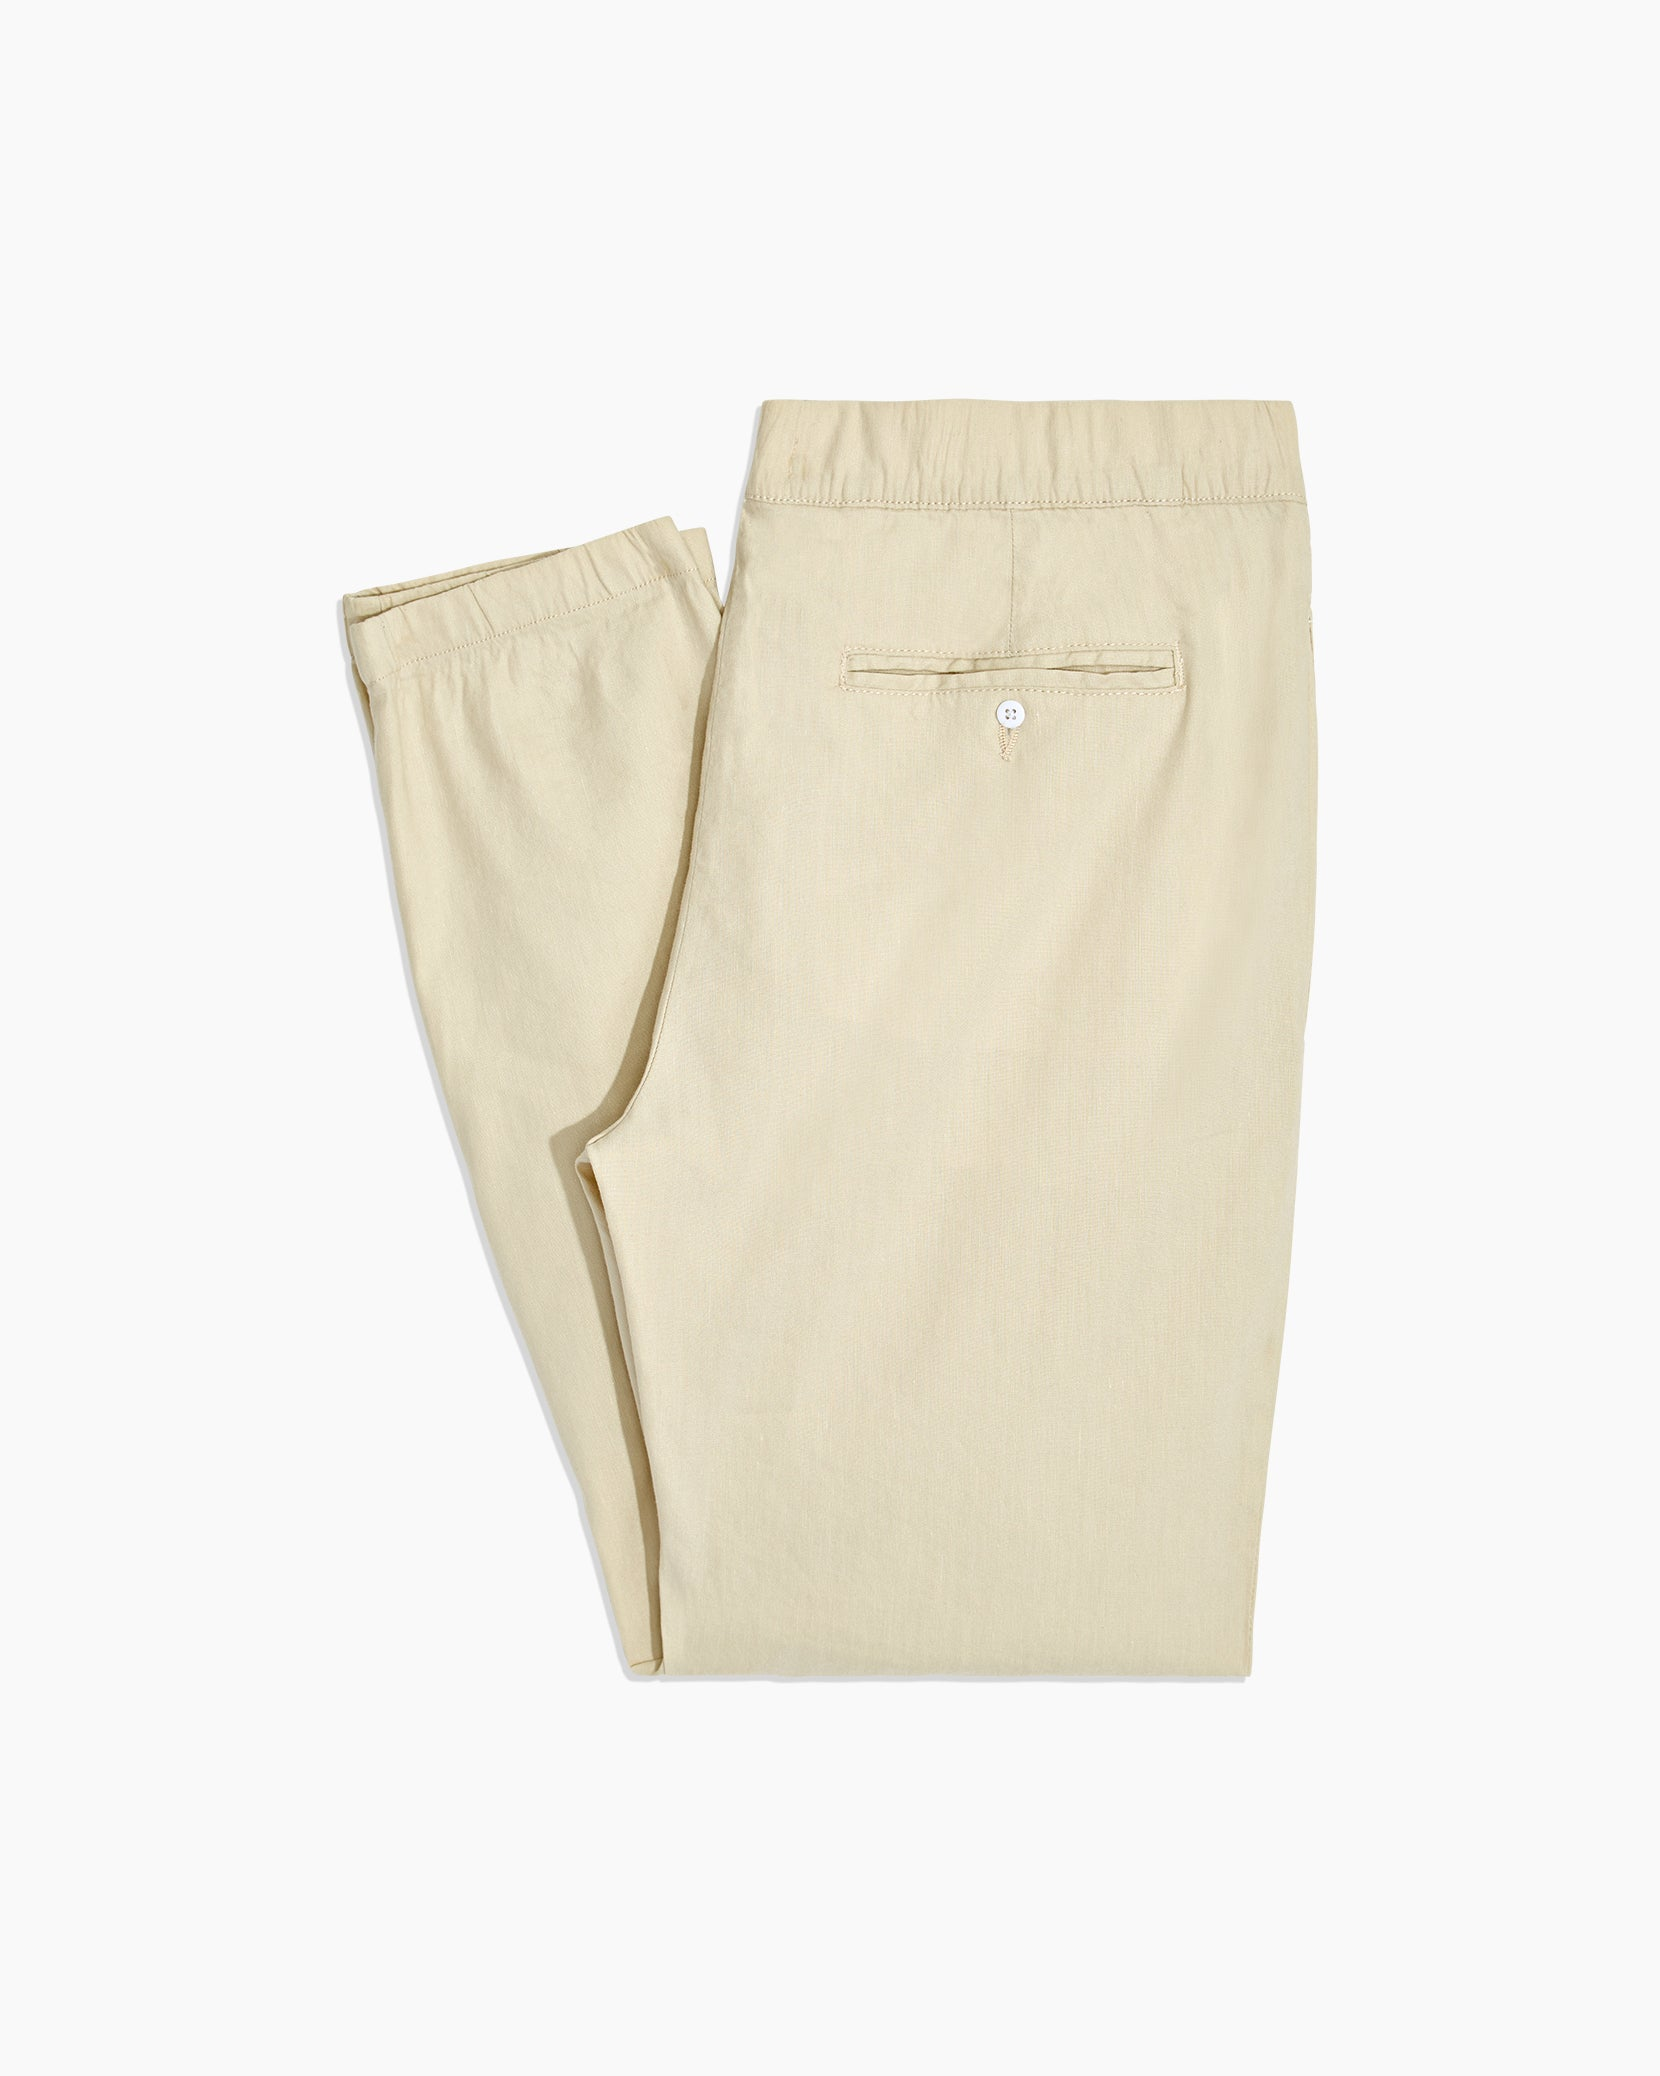 Elijah Stretch Linen Pant in Beige - 3 - Onia